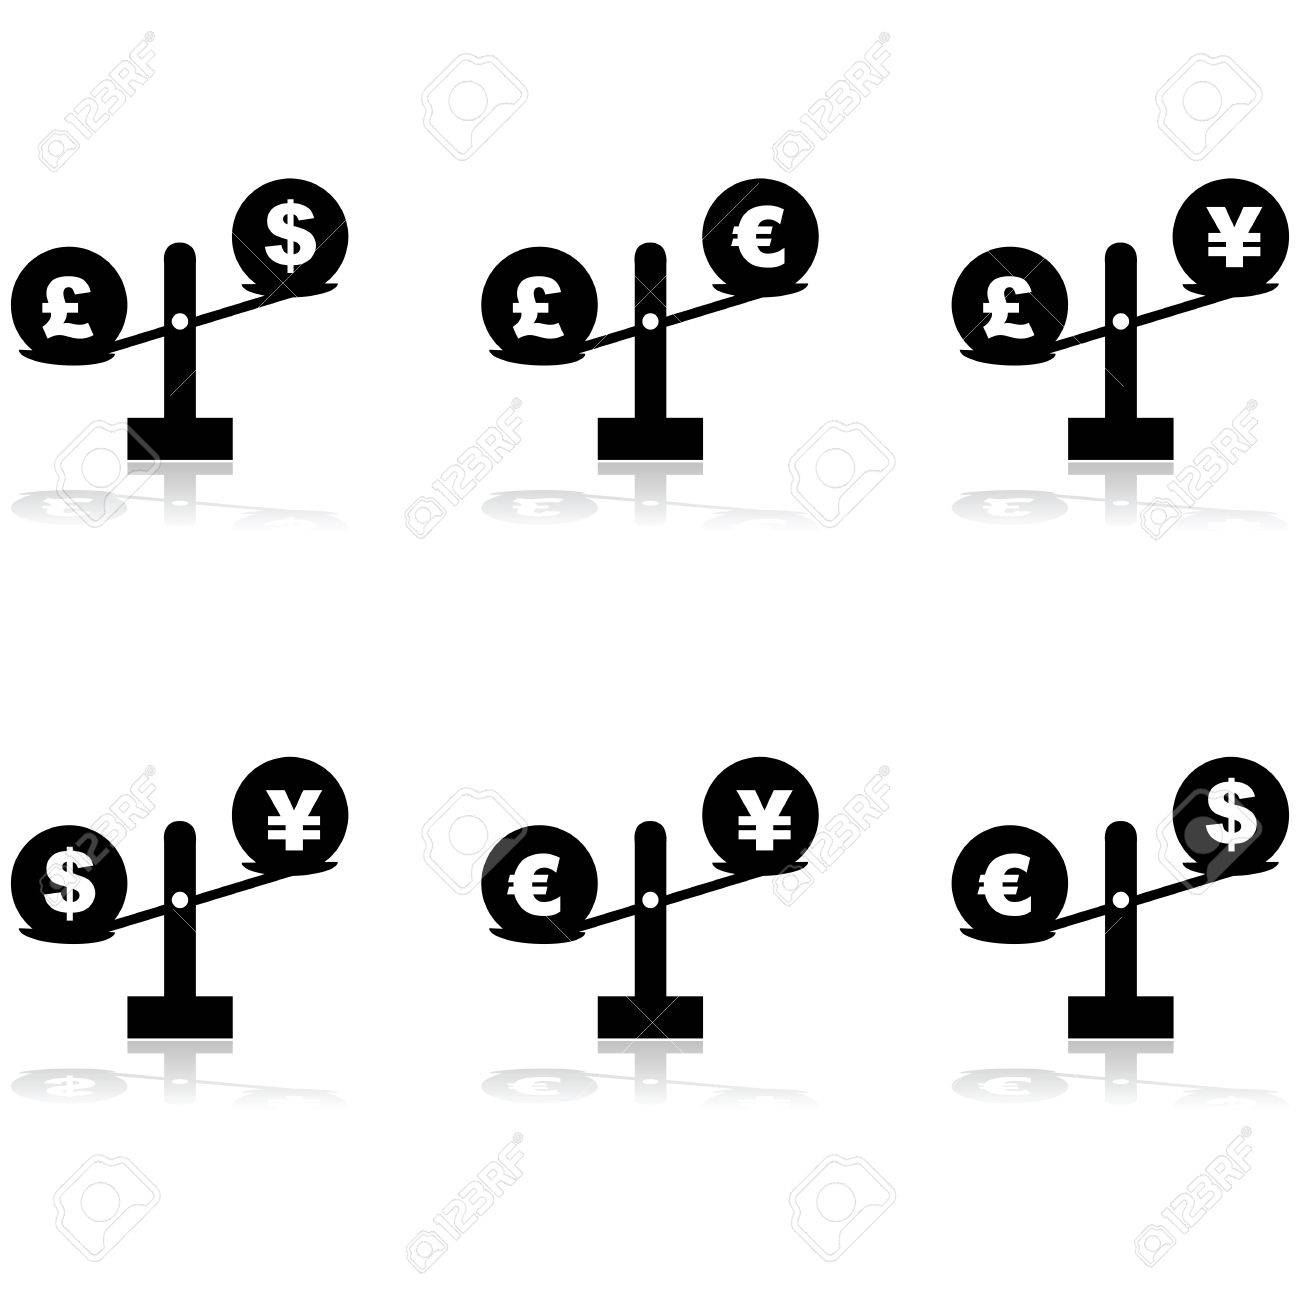 Icon set showing different currency symbols placed on scales icon set showing different currency symbols placed on scales stock vector 28893868 biocorpaavc Image collections